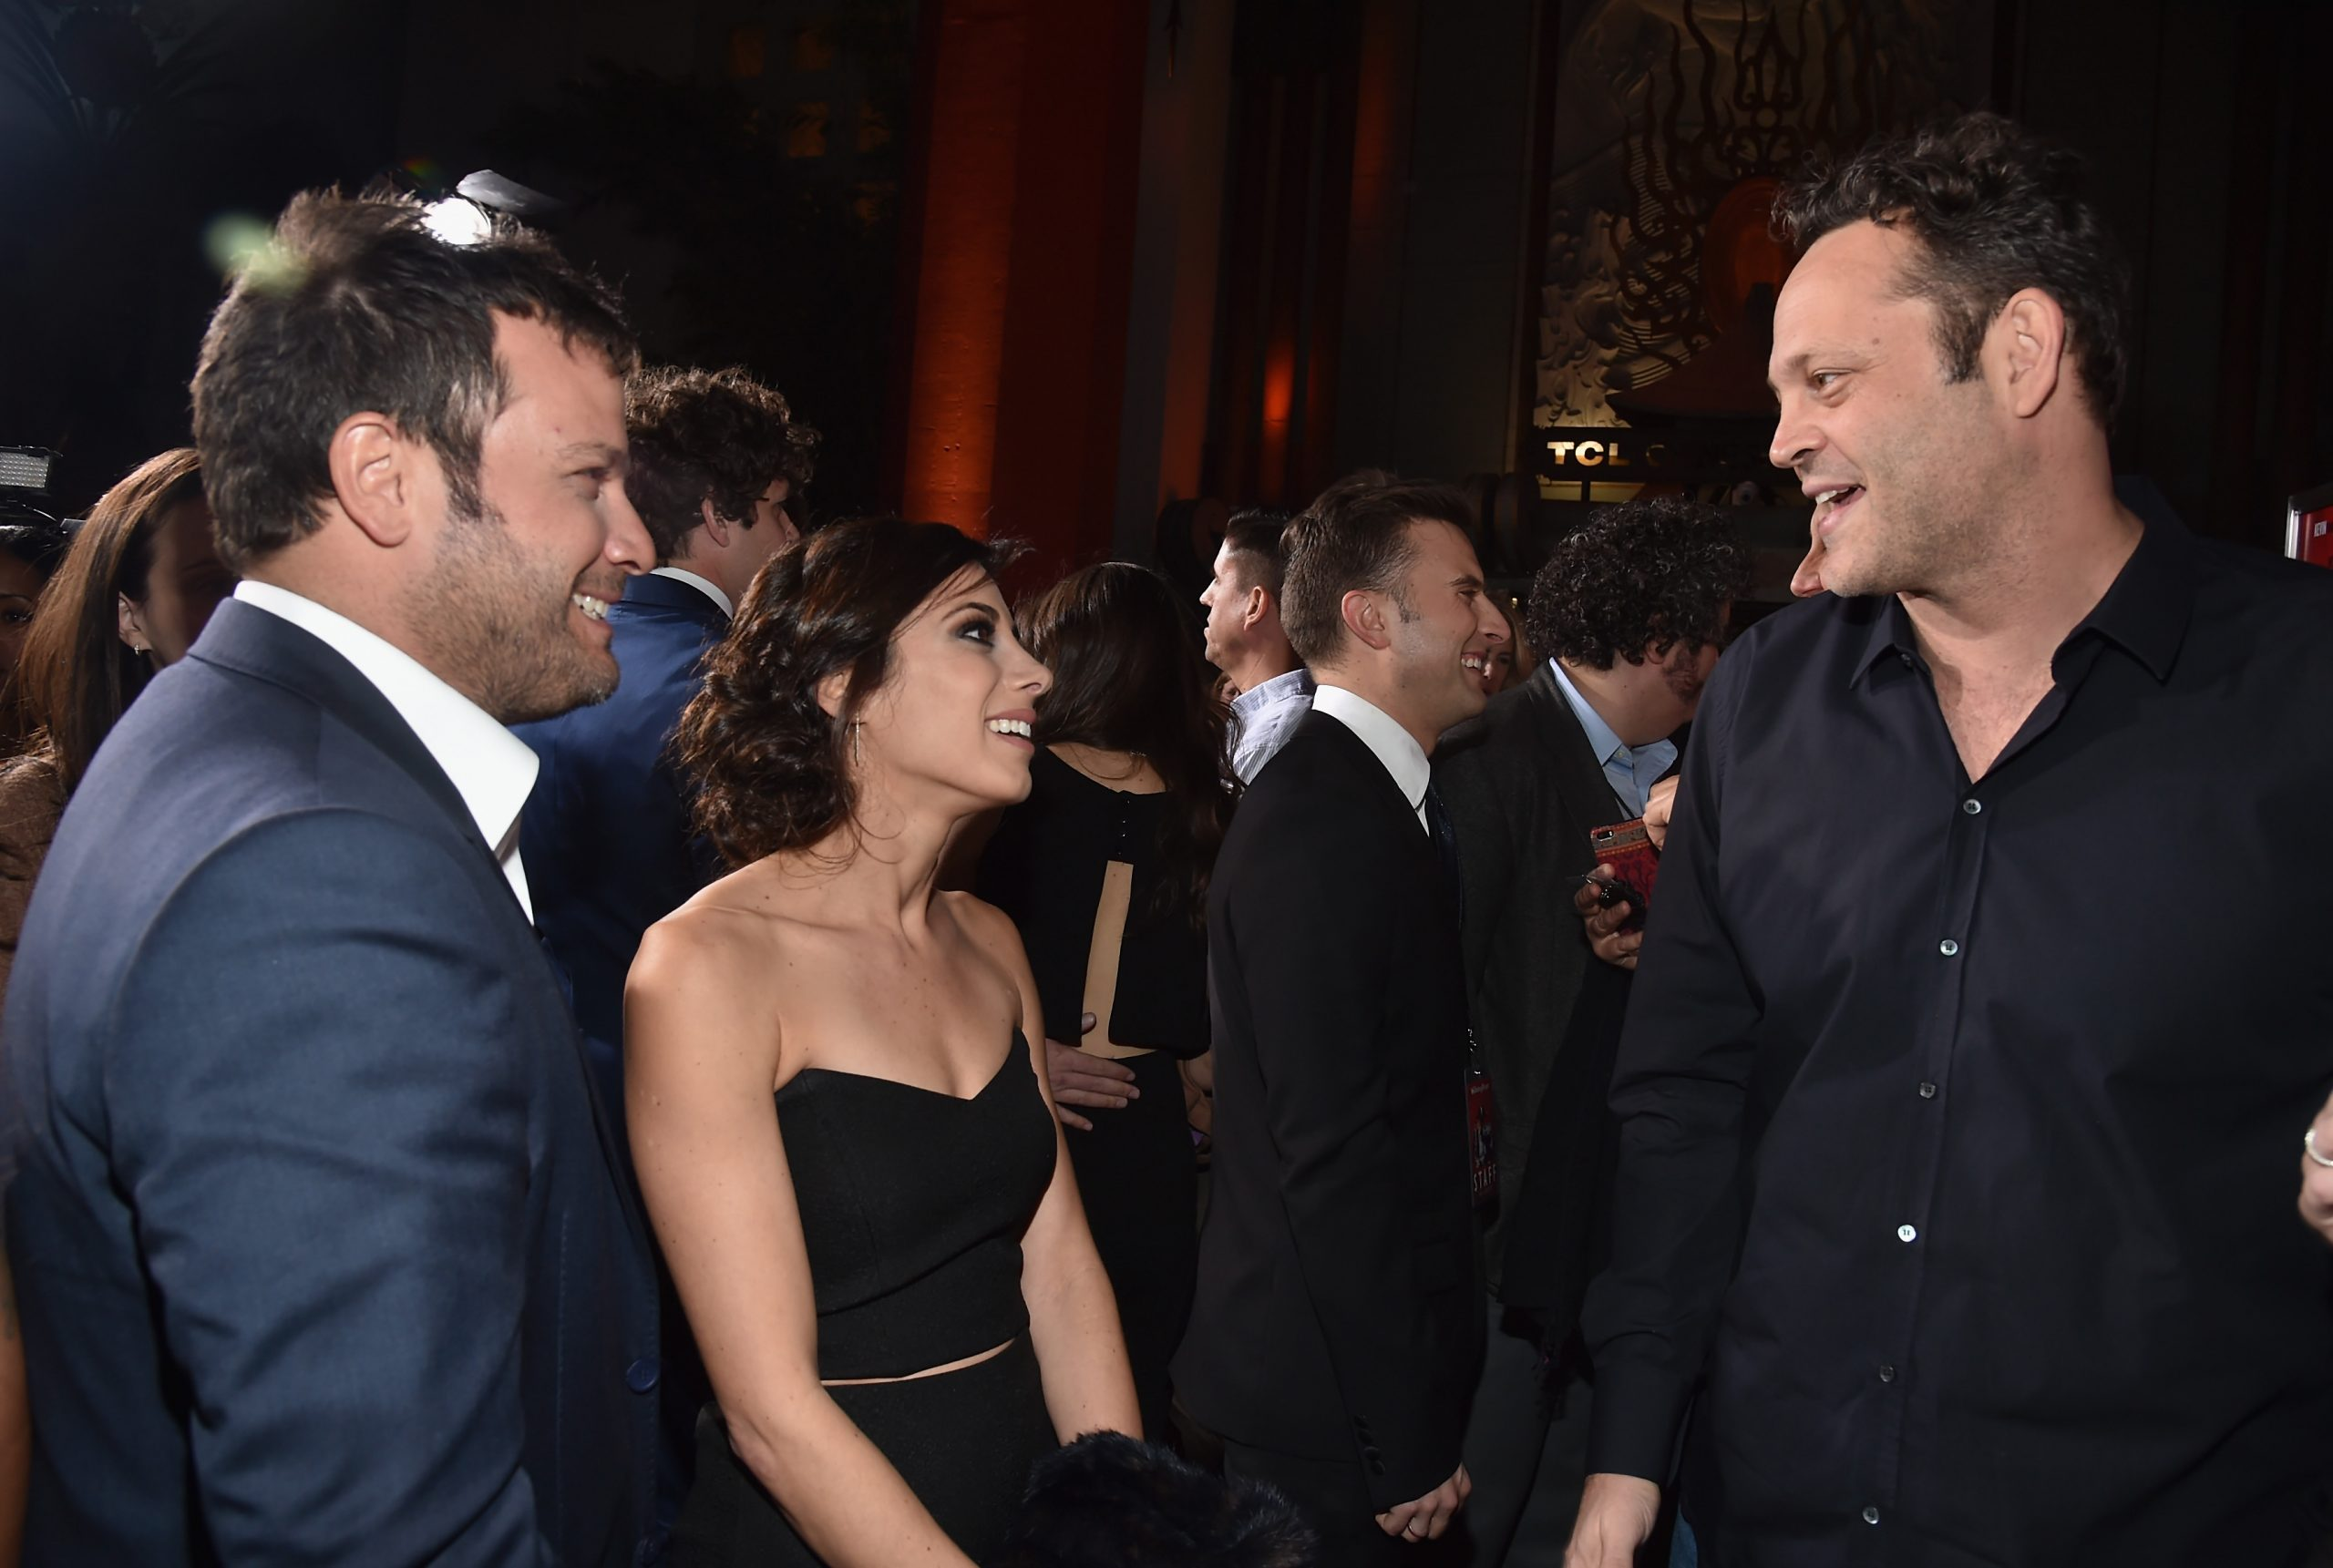 Vince Vaughn to star in North Hollywood